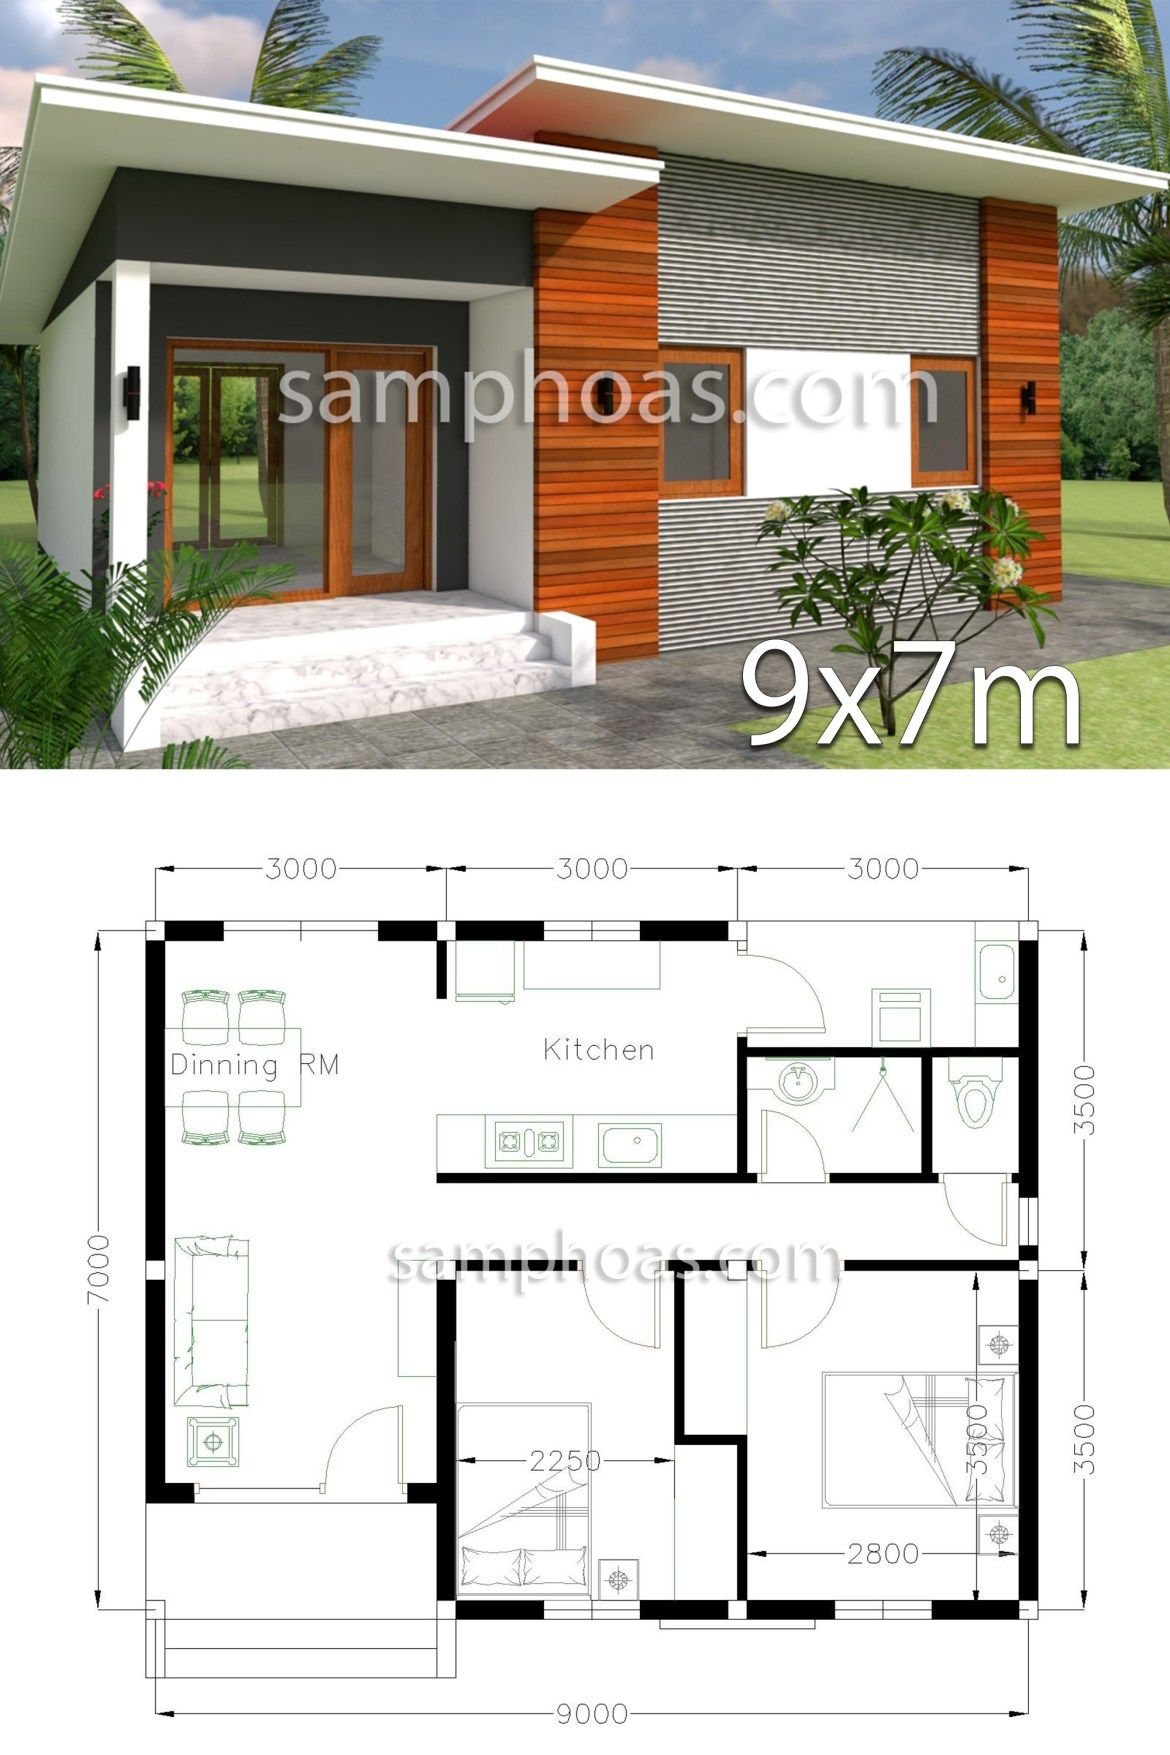 Plan 3d Home Design 9x7m 2 Bedrooms Samphoas Plansearch House Designs Exterior Small House Design Modern House Plans